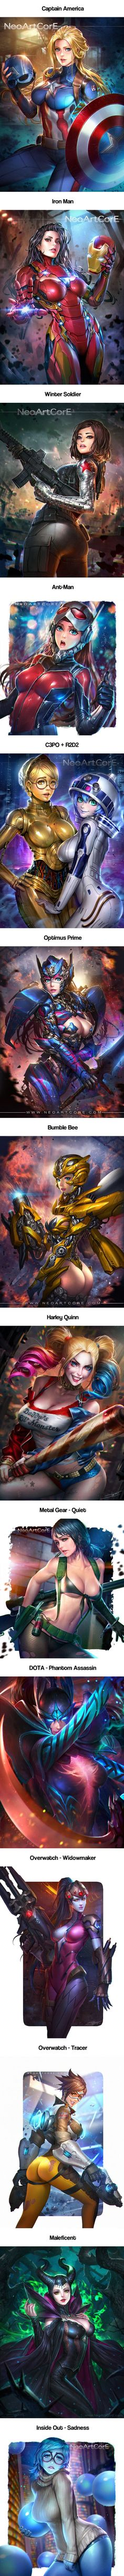 14 Movie Game Characters Transformed In Pin-Up Style, All Waifu Materials (By NeoArtCorE) Bd Comics, Comics Girls, Marvel Girls, Marvel Art, Manga Art, Anime Art, Super Heroine, Waifu Material, Sexy Cartoons